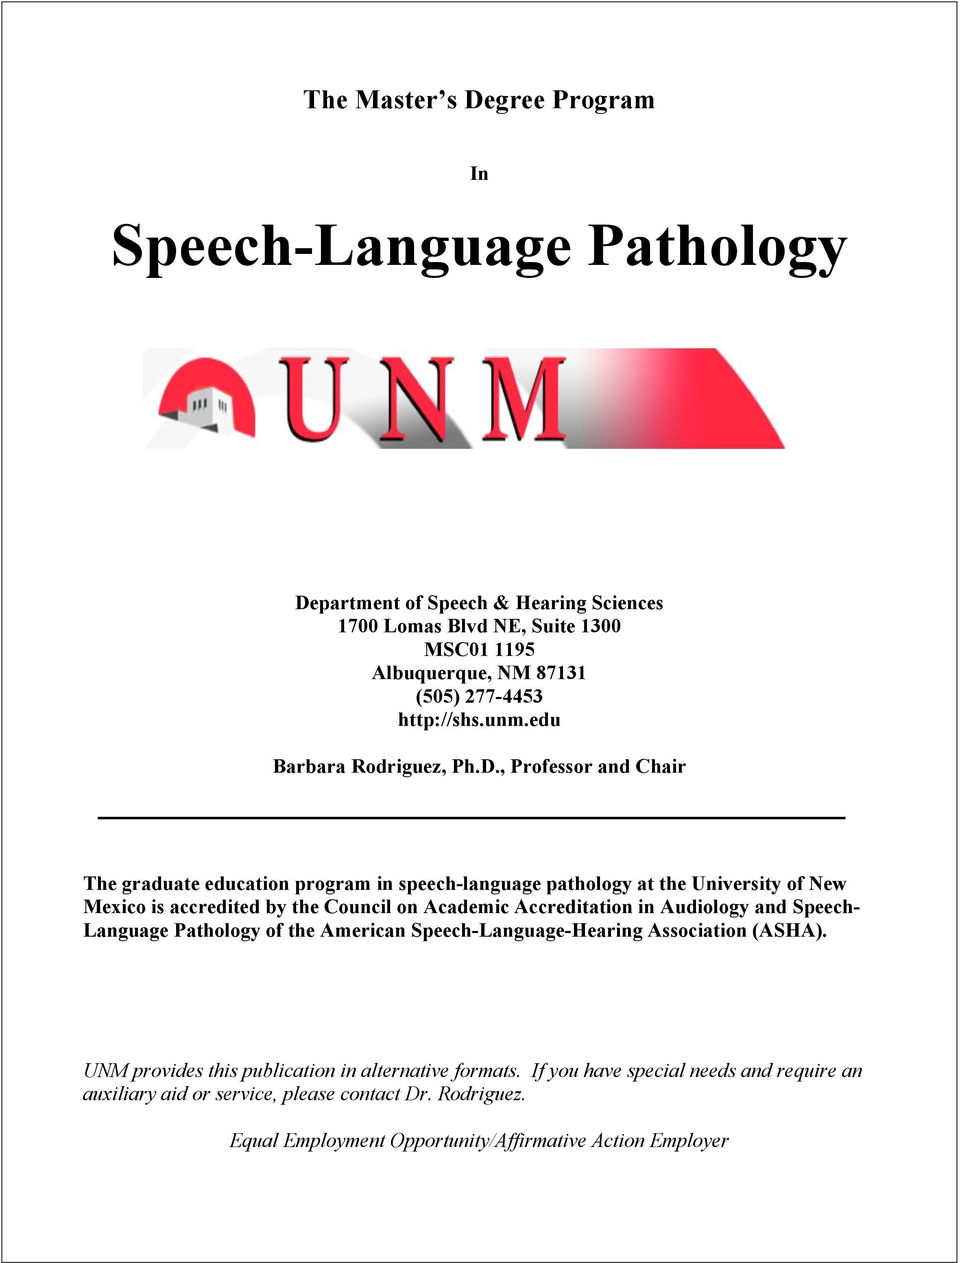 , Professor and Chair The graduate education program in speech-language pathology at the University of New Mexico is accredited by the Council on Academic Accreditation in